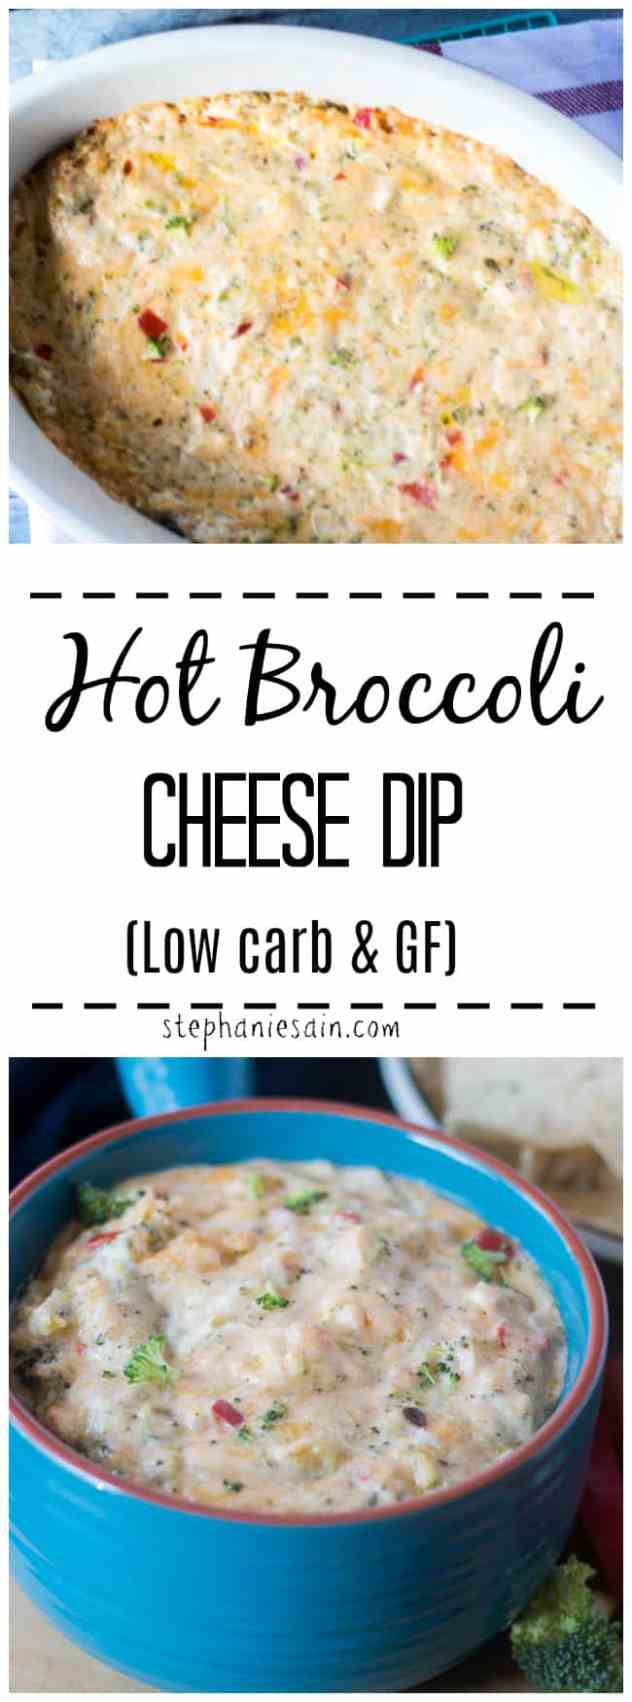 This Broccoli Cheese Dip is super easy to make and perfect for gatherings, parties, & football games. An appetizer that is sure to be a crowd pleaser. Warm, cheesy dip with broccoli. Low Carb & Gluten Free.